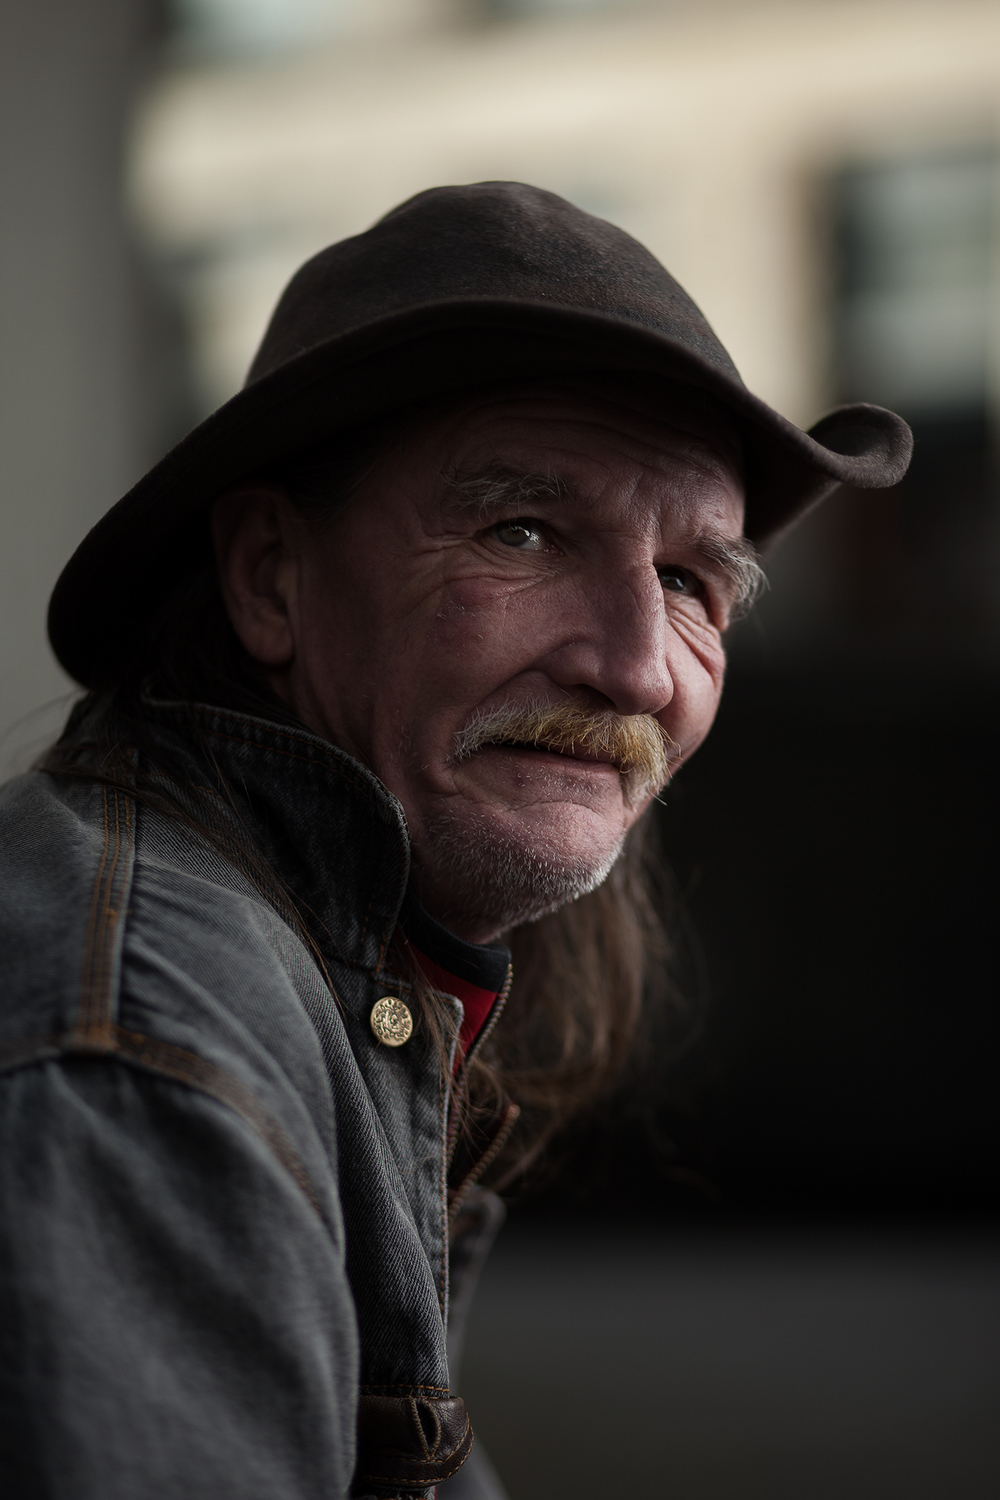 Paul is a troubled and unapologetic alcoholic. However, despite his problems, he's very kind, outgoing, and willing to help others in any way he can.